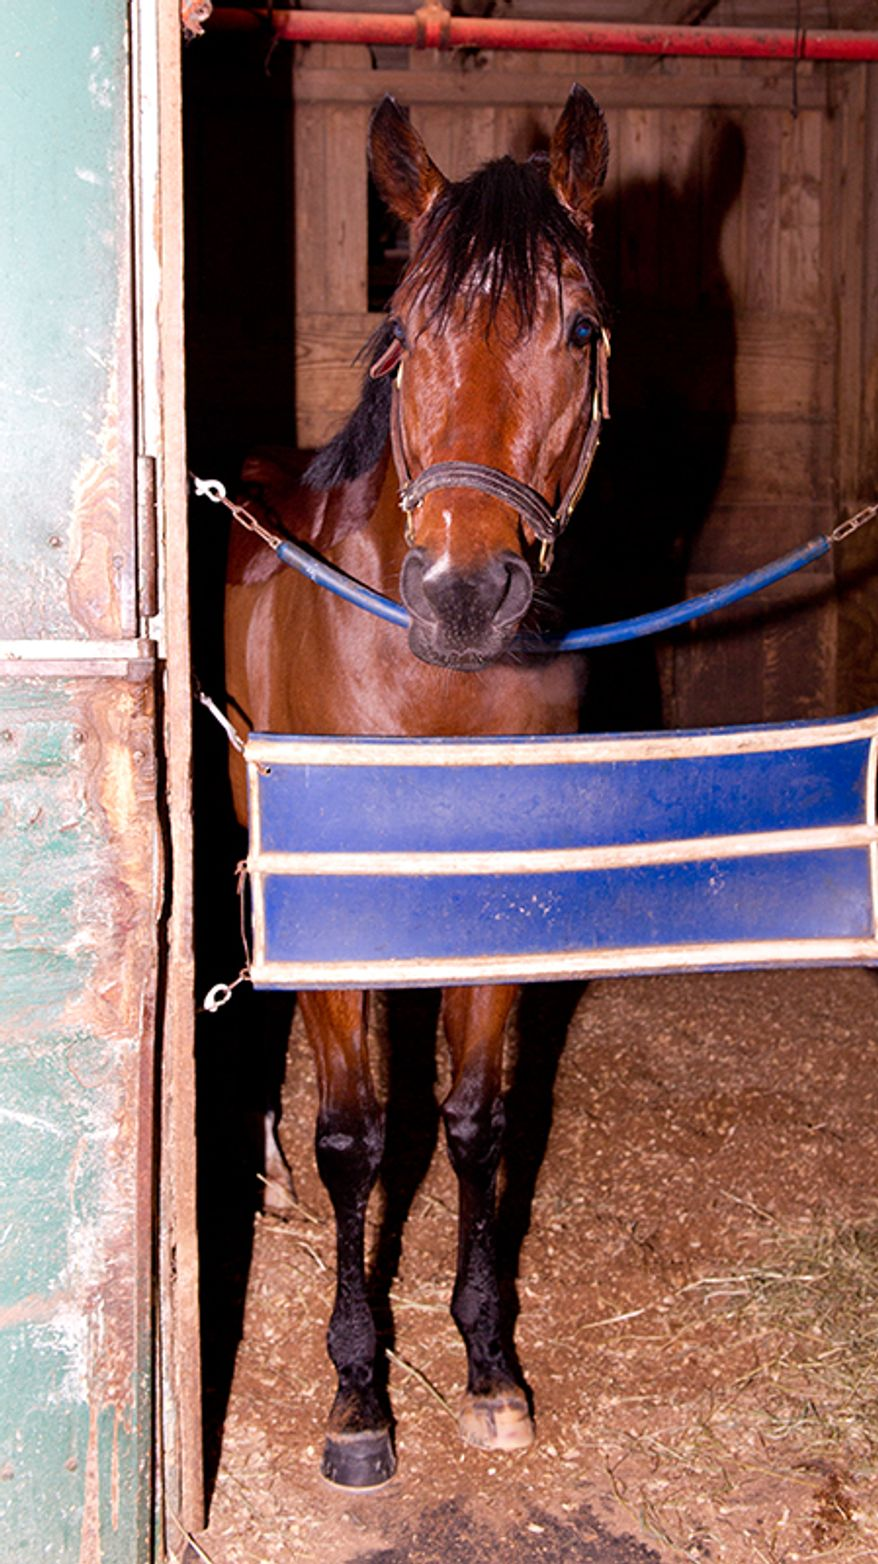 Bullet Catcher was uninjured after escaping from Laurel Park on Jan. 11, 2013 and going for a 1.6-mile run down Route 1. (Photo courtesy Maryland Jockey Club